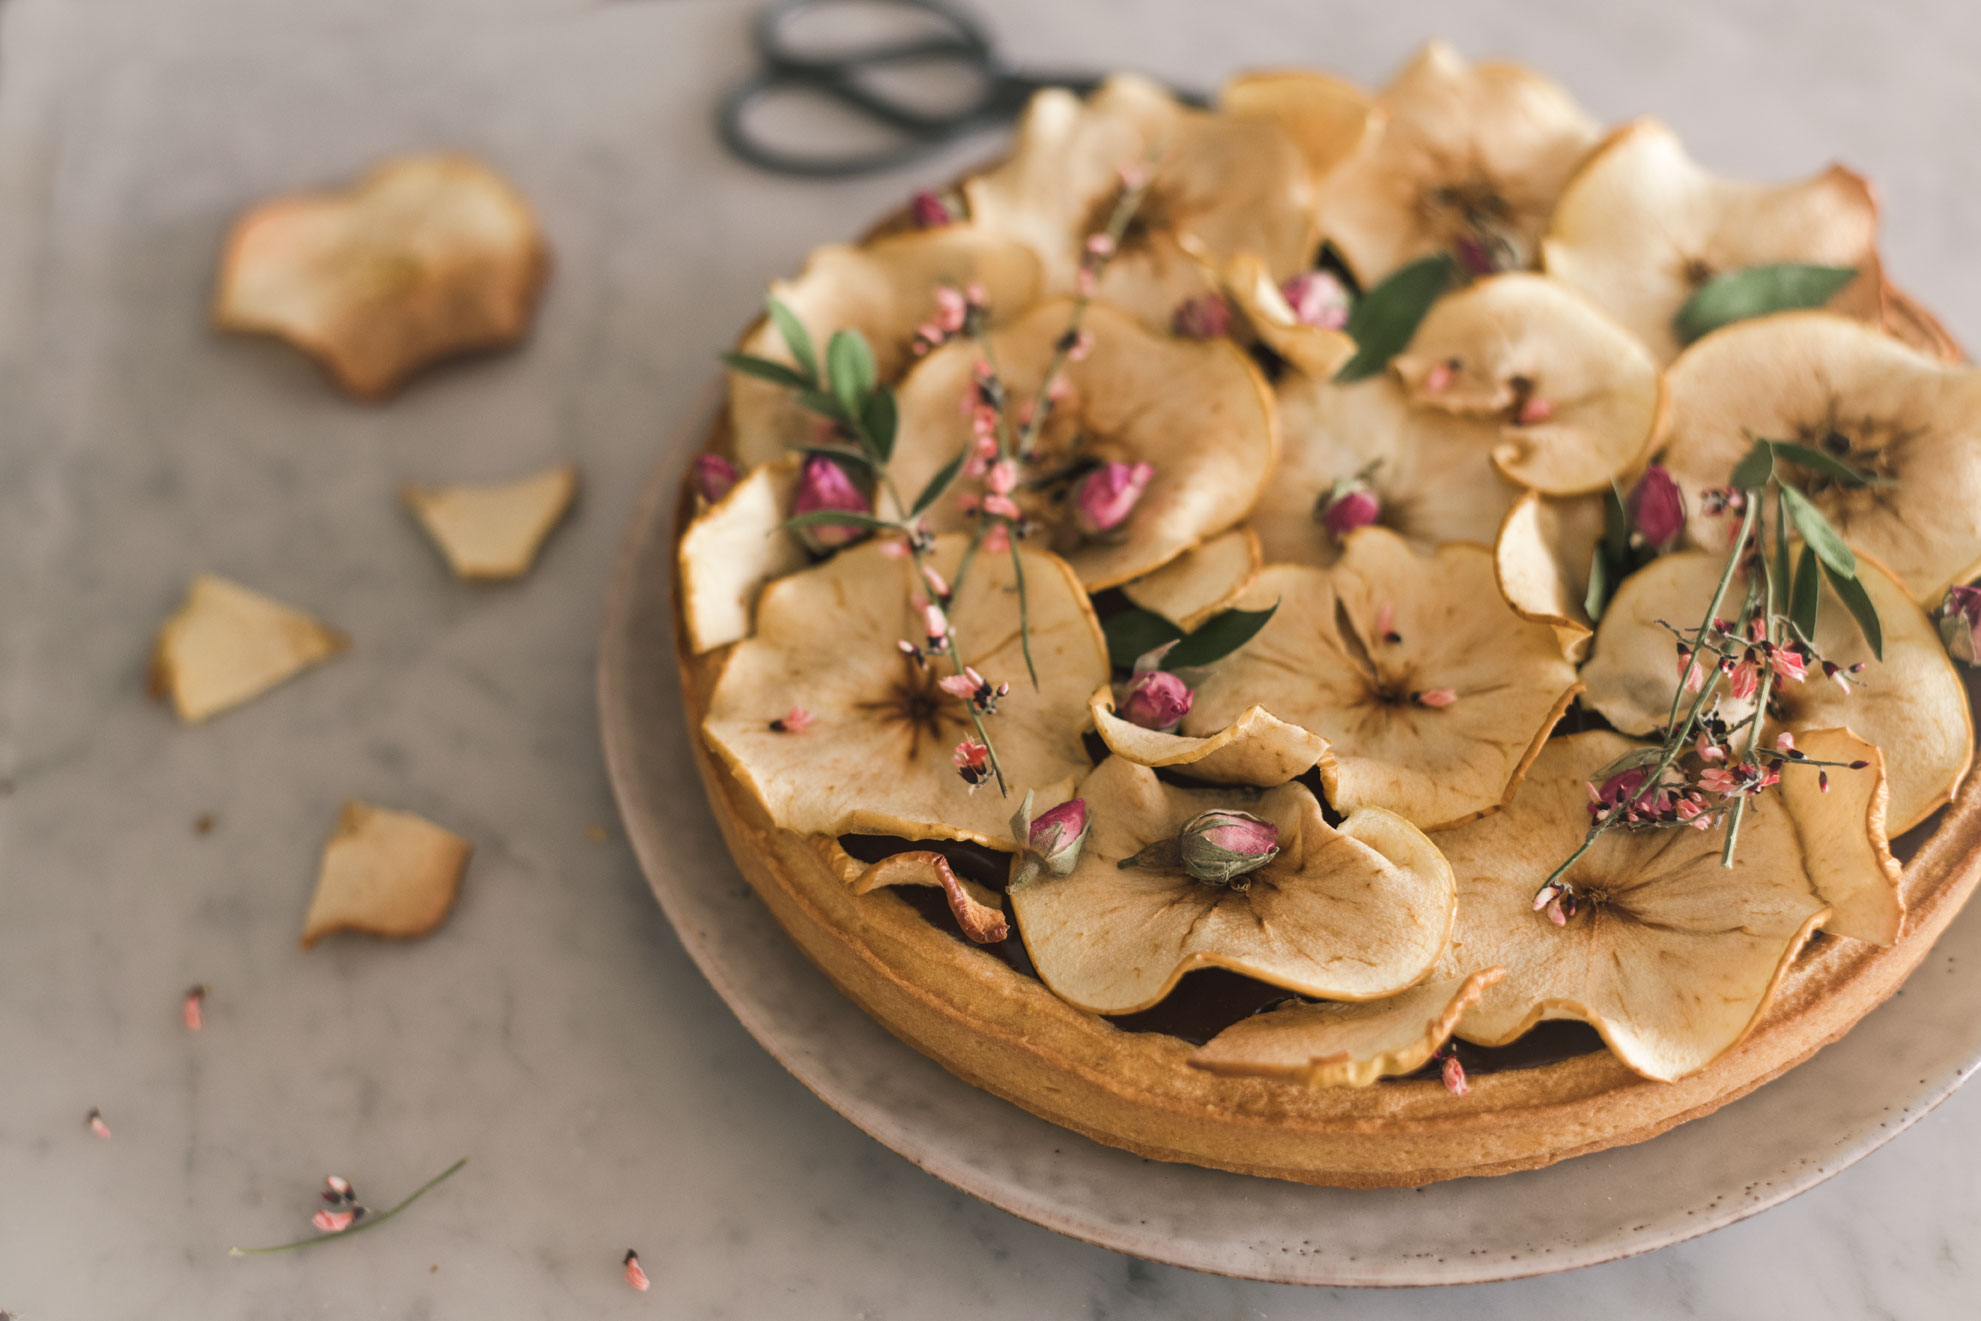 dark chocolate ganache tart with apples and flowers